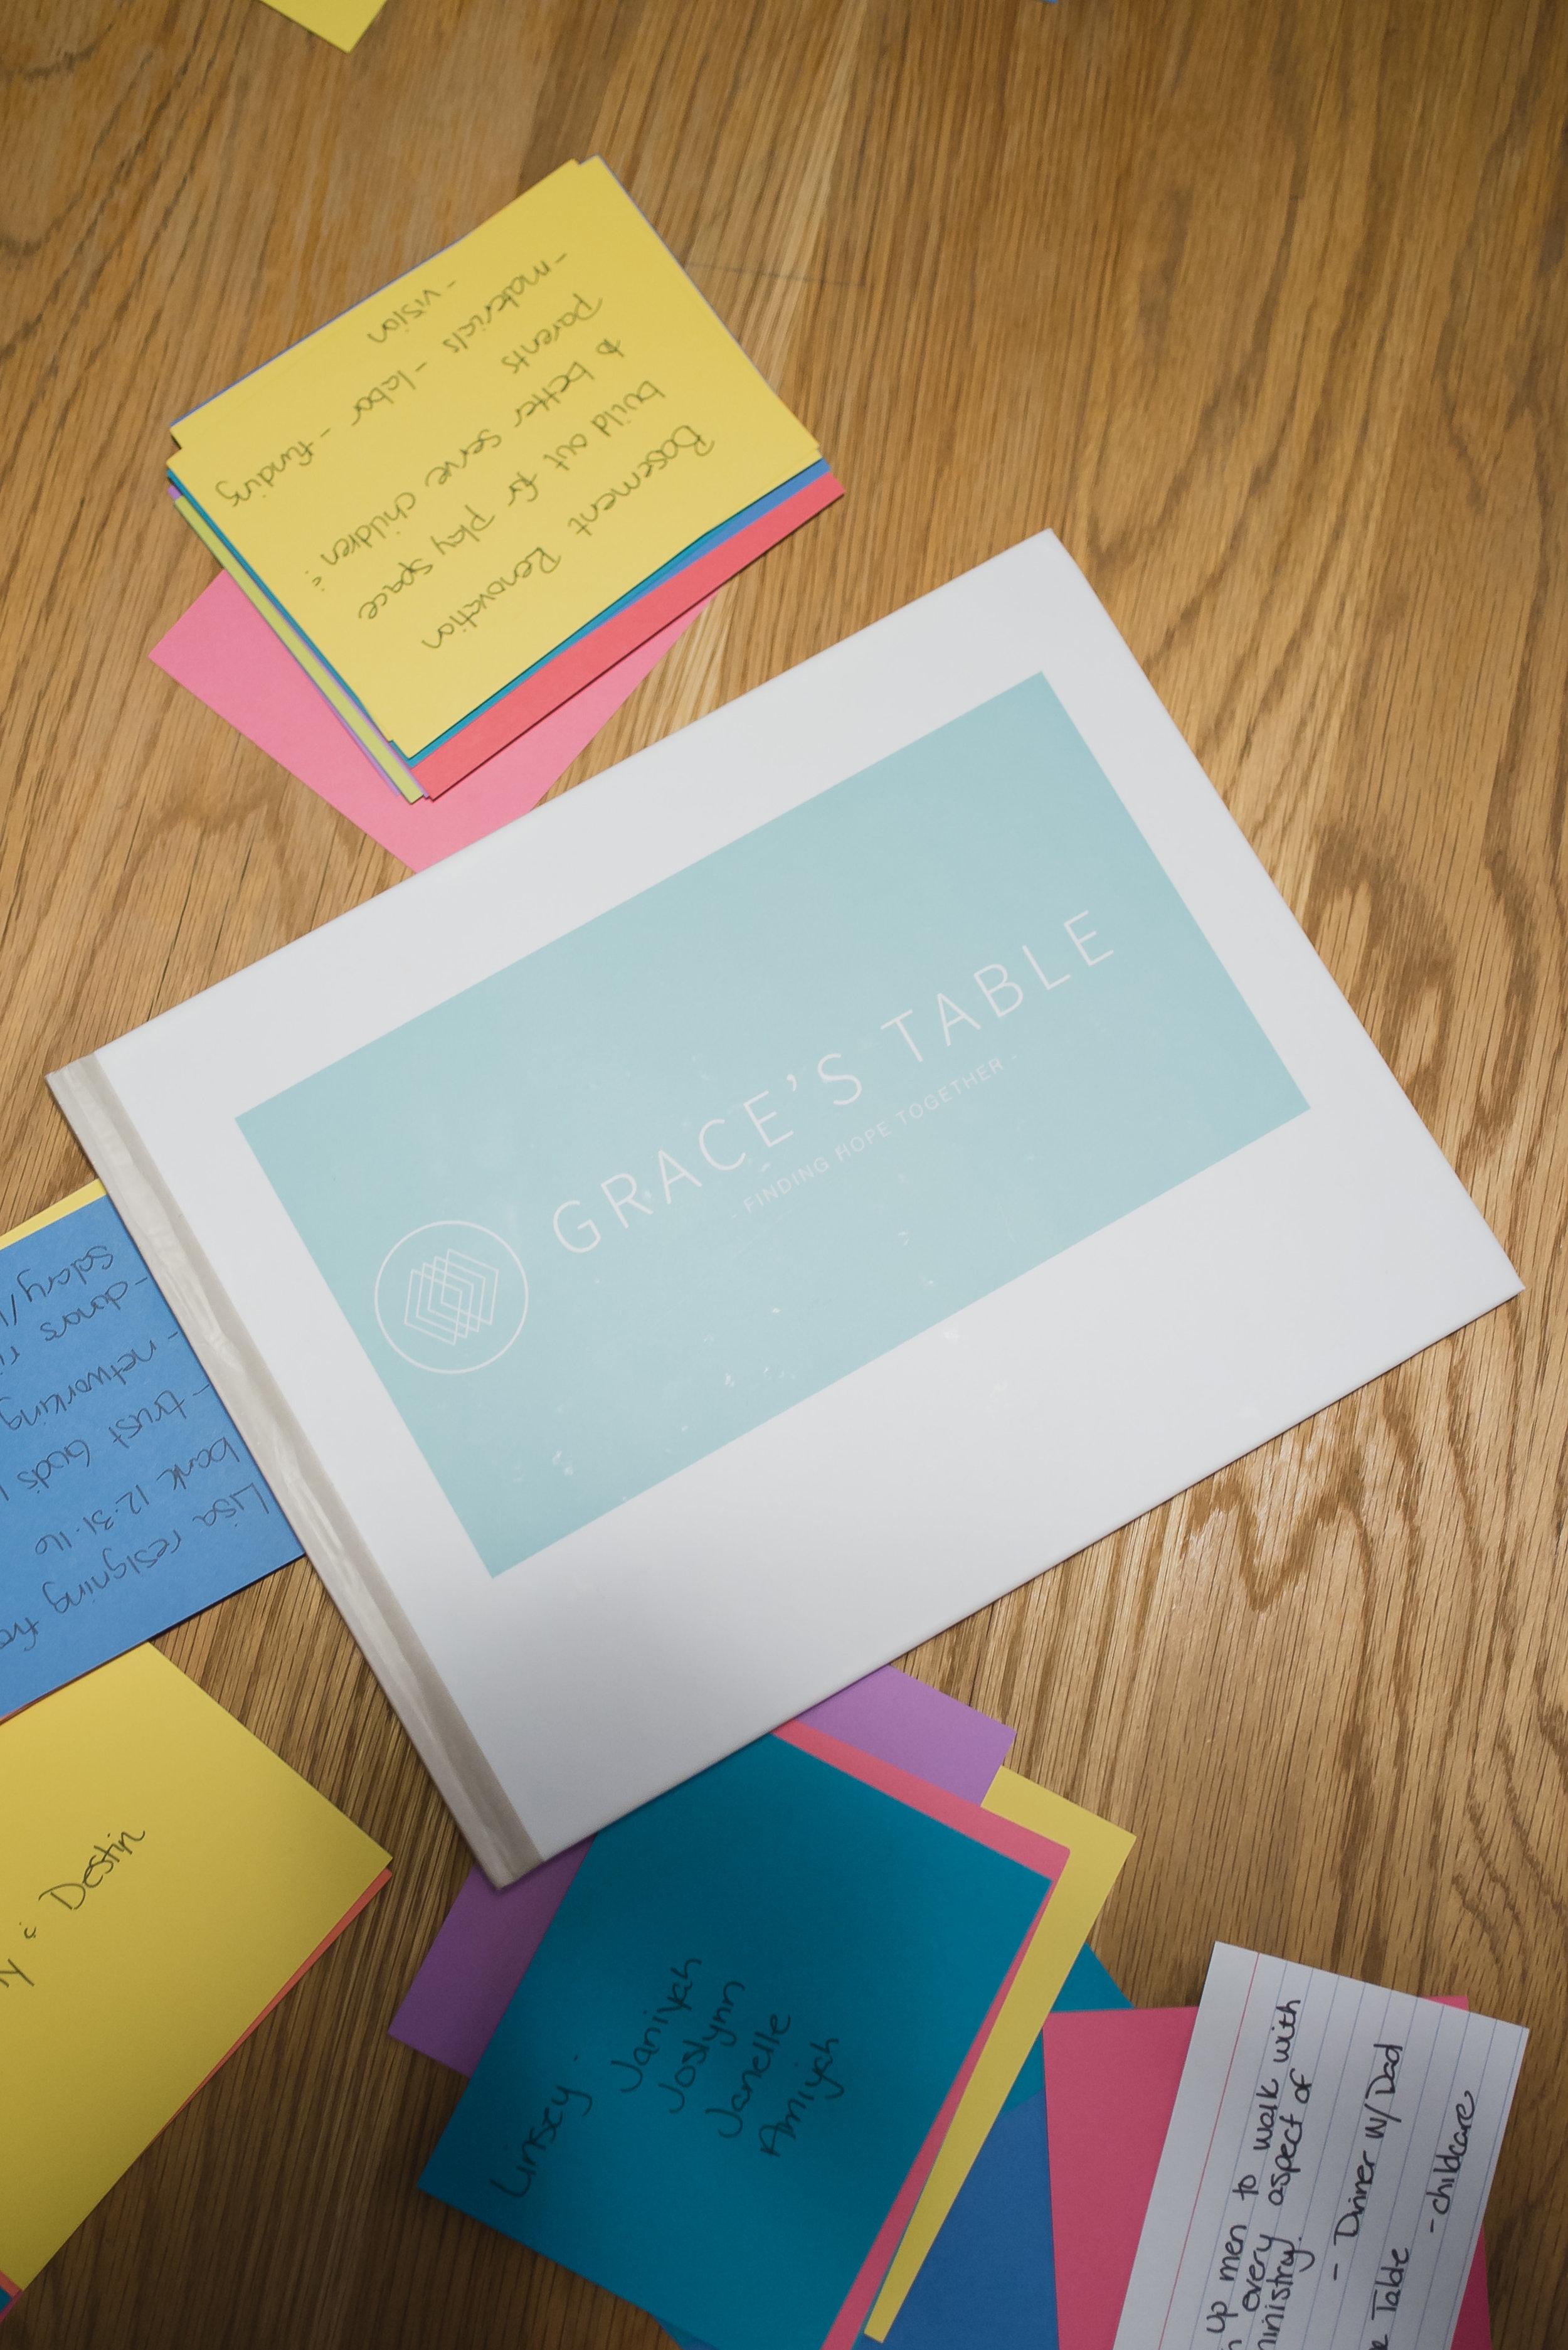 Notecards with prayer requests were placed on the table and one by one we prayed over them individually and together.